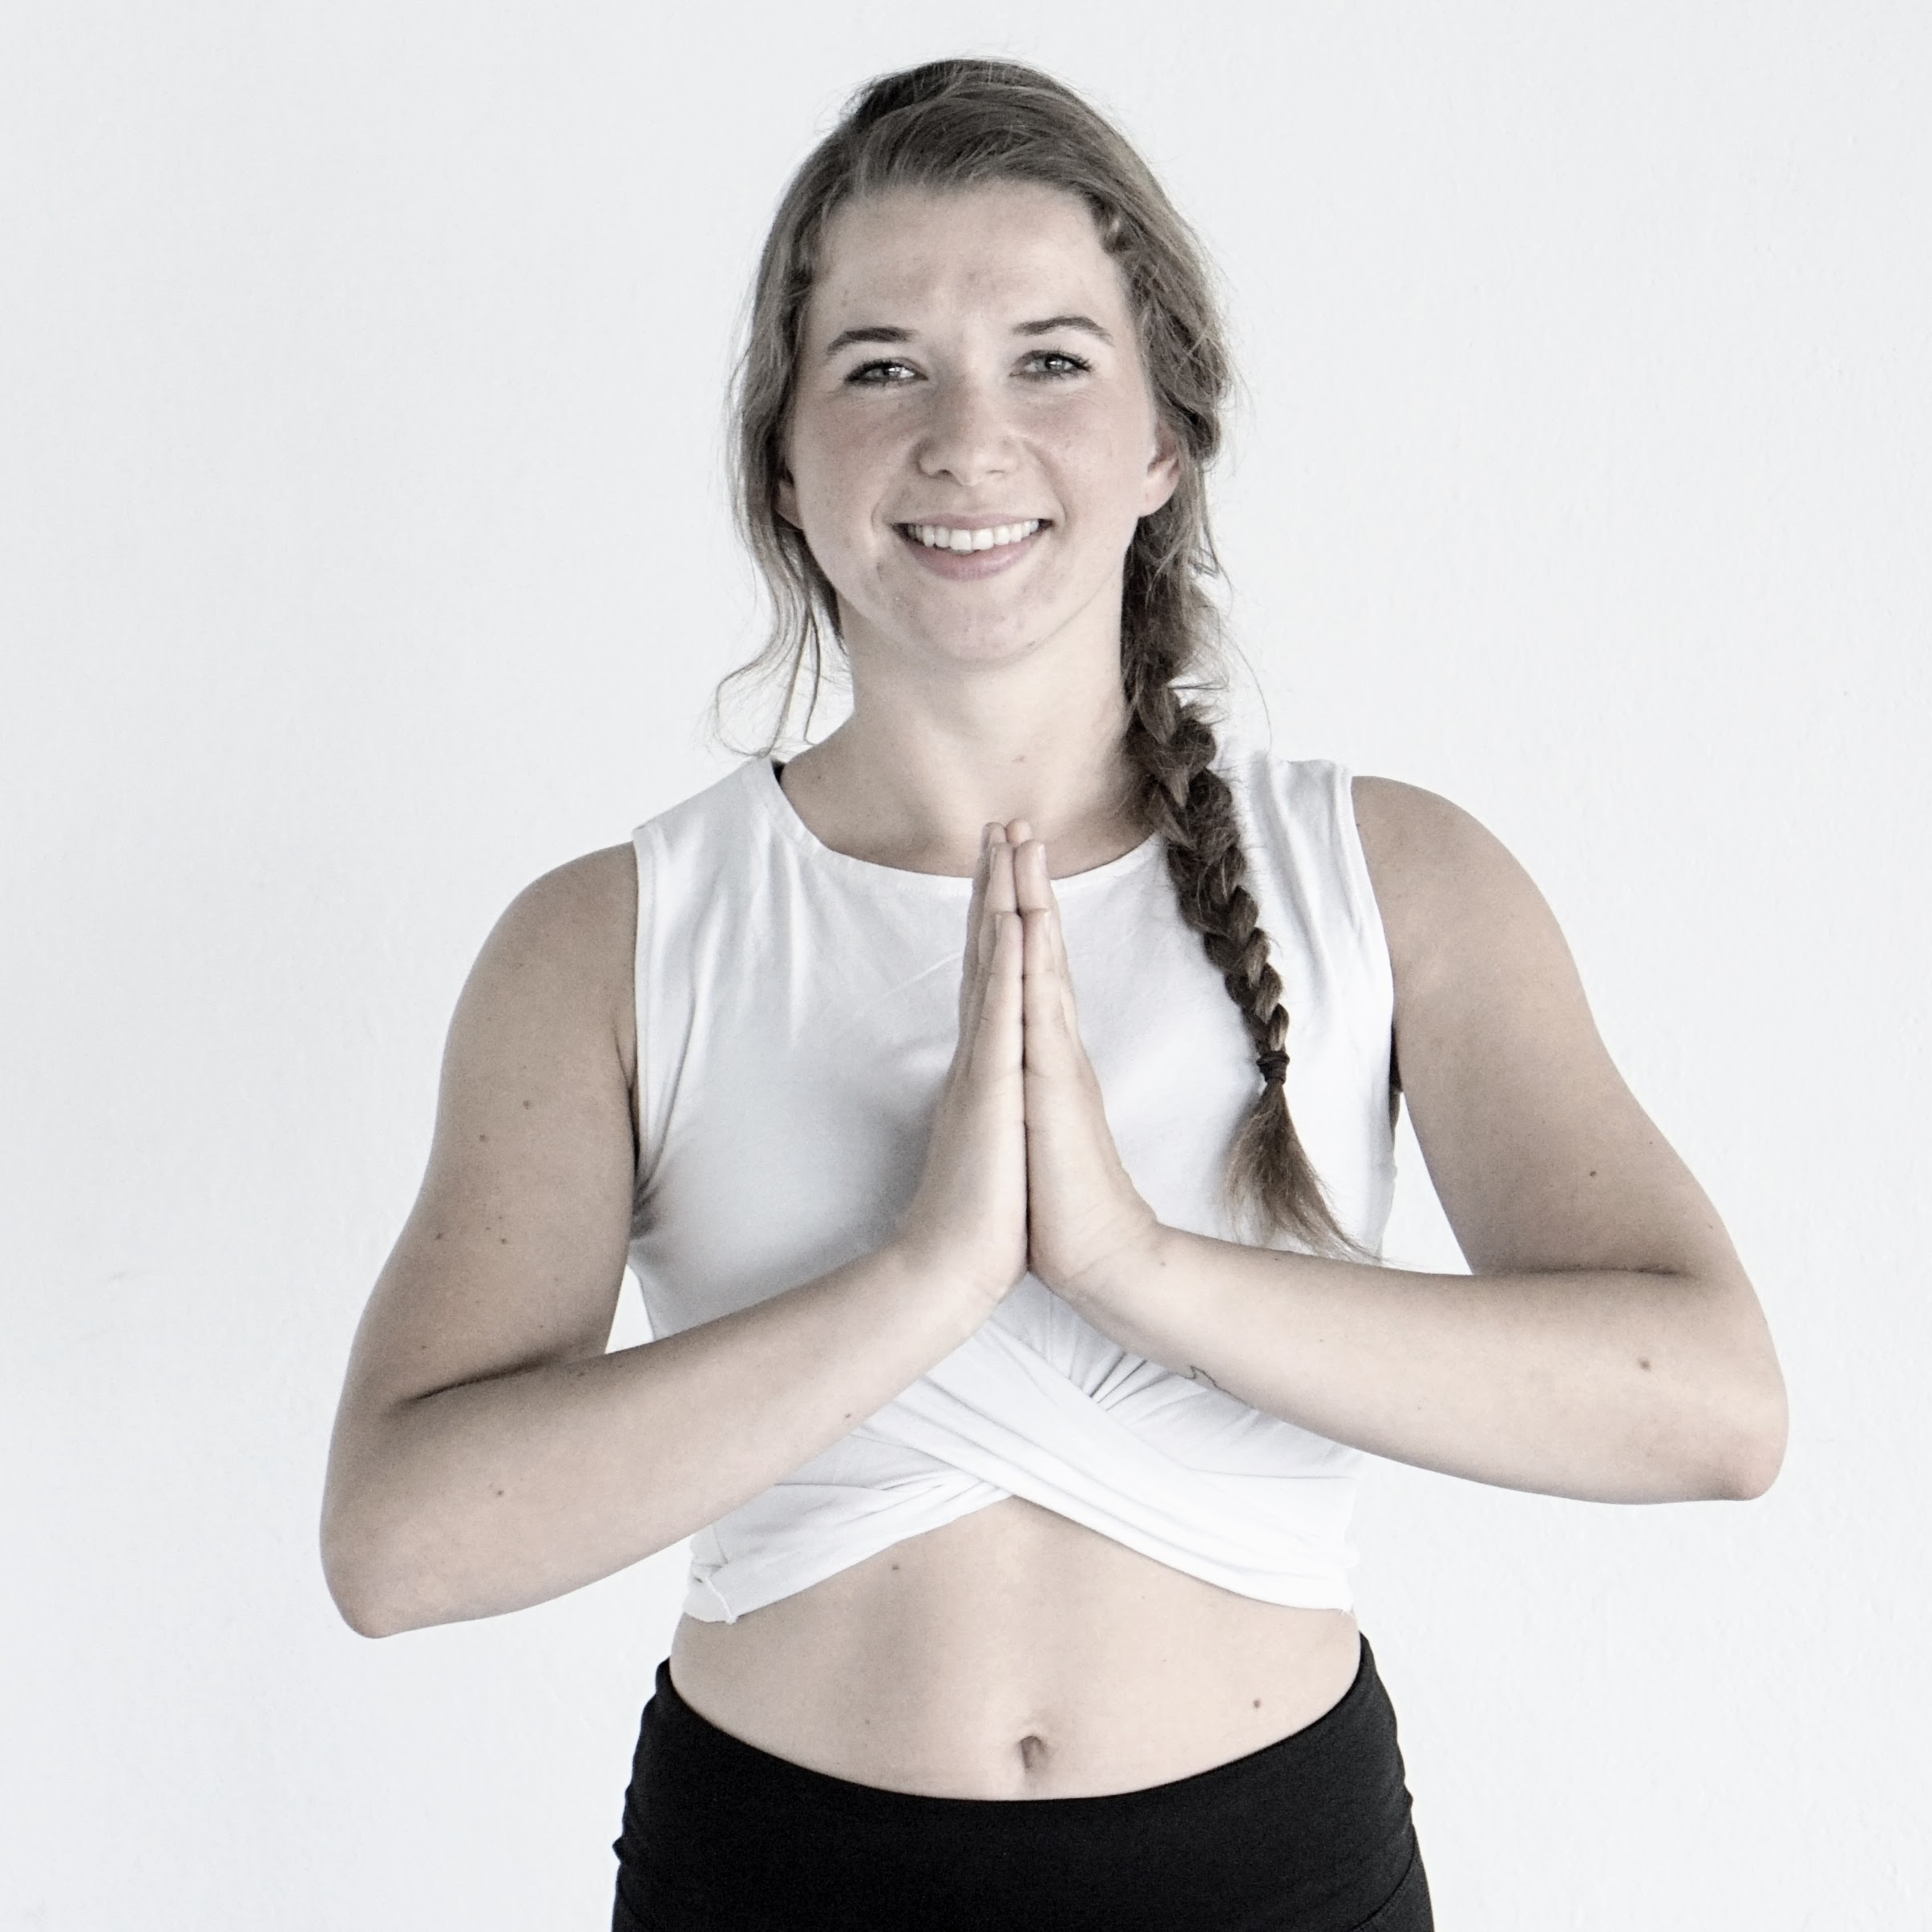 Katja Czieselsky - Teacher YOGA (EN/DE)CERTIFICATIONS:• 200H Y4ALL Yoga Certificate• 100H Y4ALL Advanced Yoga Certificate• E-RYT 200